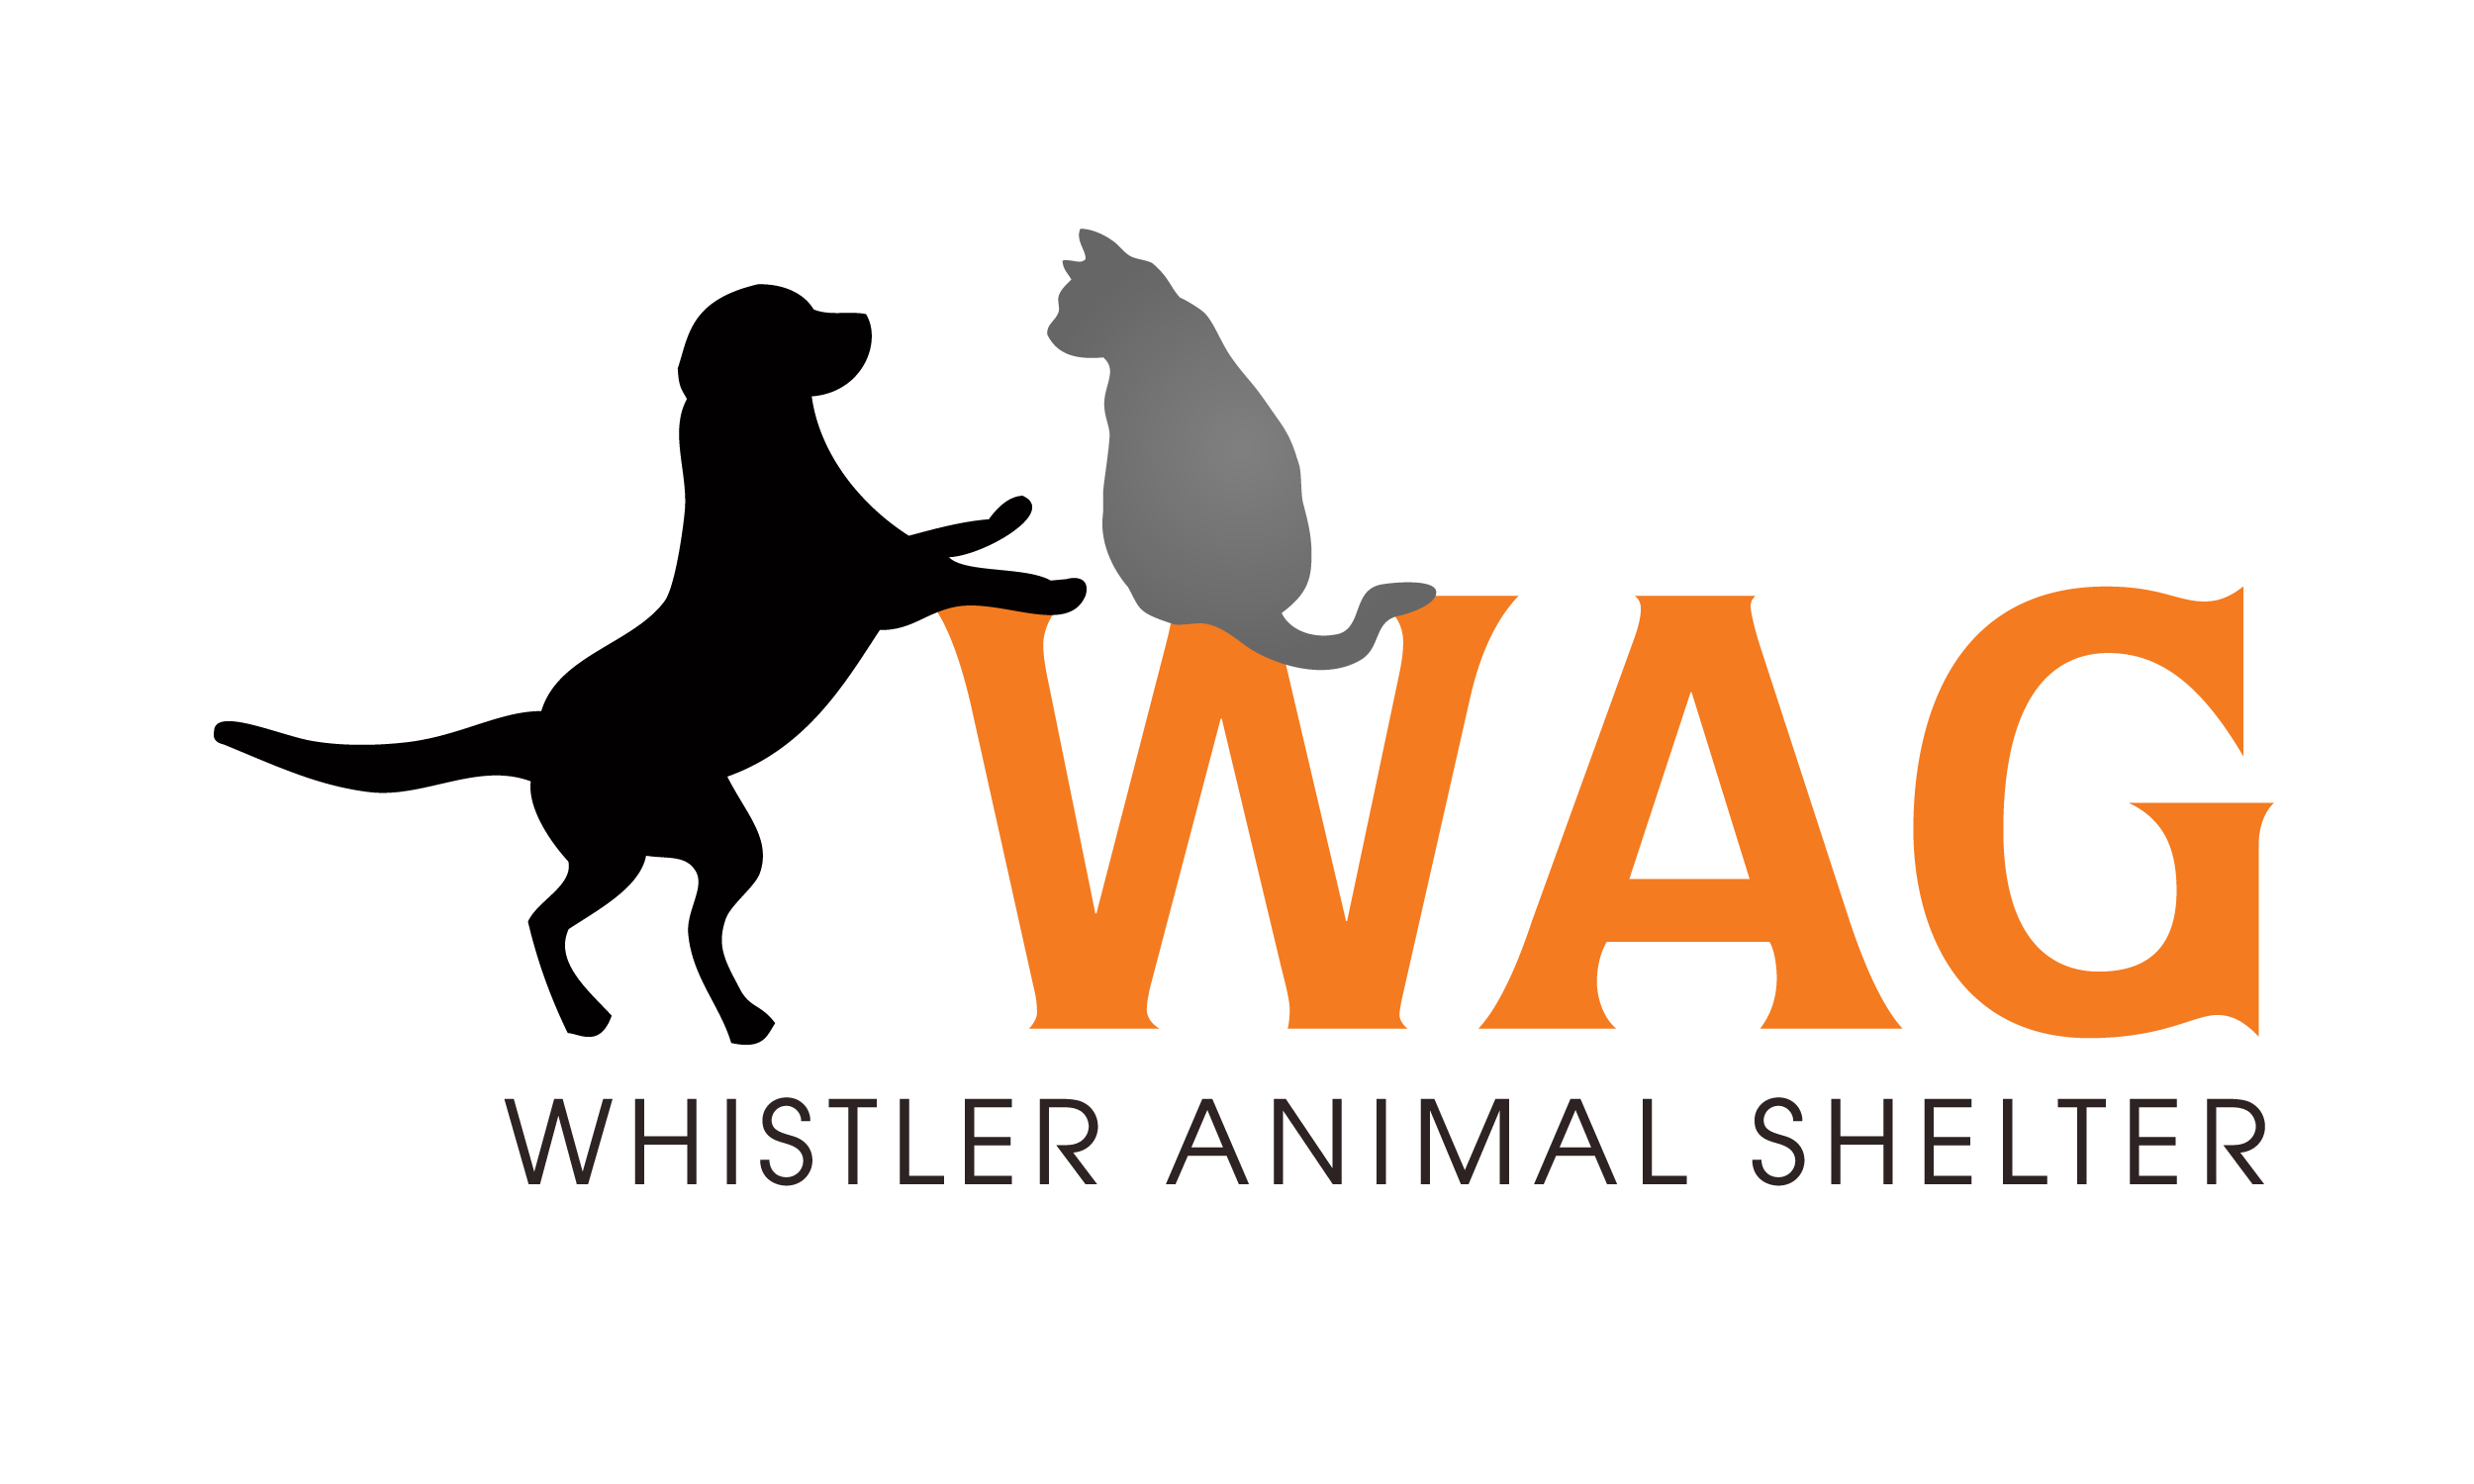 WAG - Whistler Animal Shelter